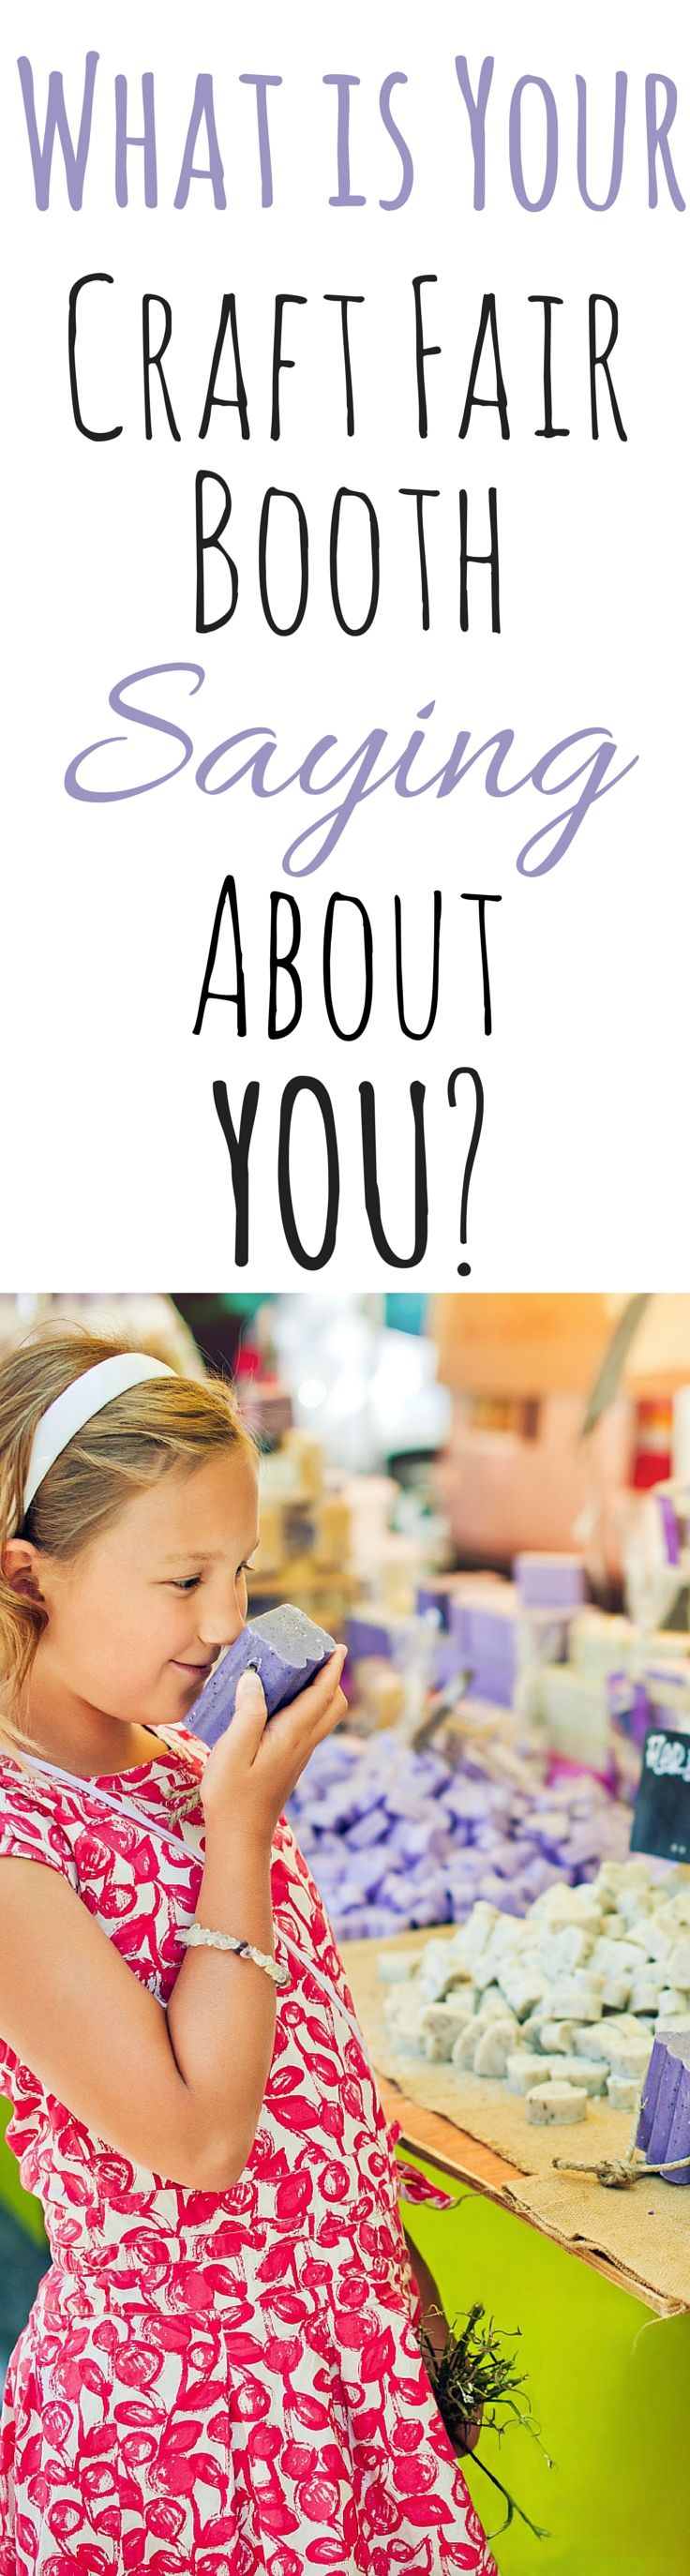 What is your craft fair booth saying about the mission and standards of your handmade business? Article here: http://www.creativeincomeblog.com/what-your-craft-fair-booth-says-about-your-handmade-business/